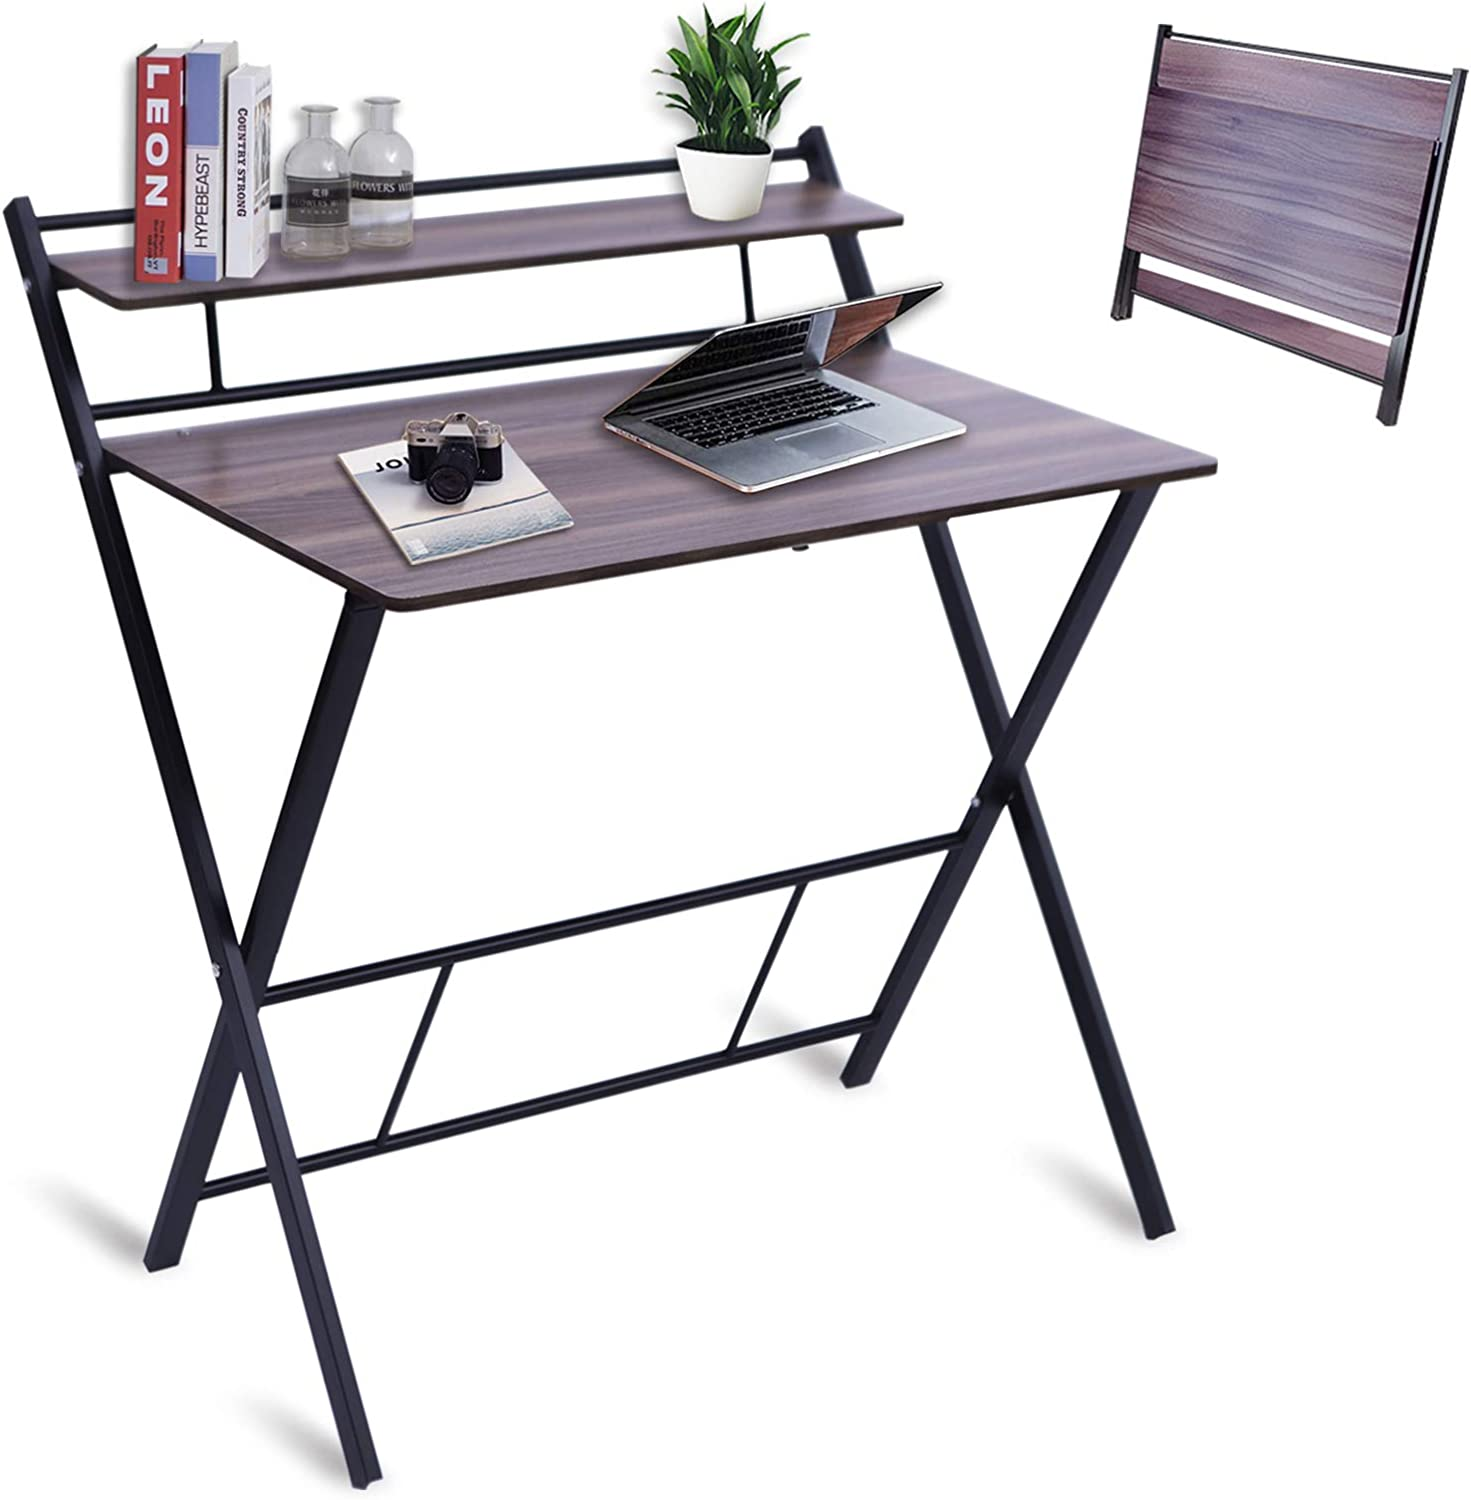 BLNDQMY Folding Desk for Small Space No Assembly Required, 2 Tiers Foldable Writing Computer Desks with Shelf Home Office Table, Student Study Table (Dark Wooden 31Inch)